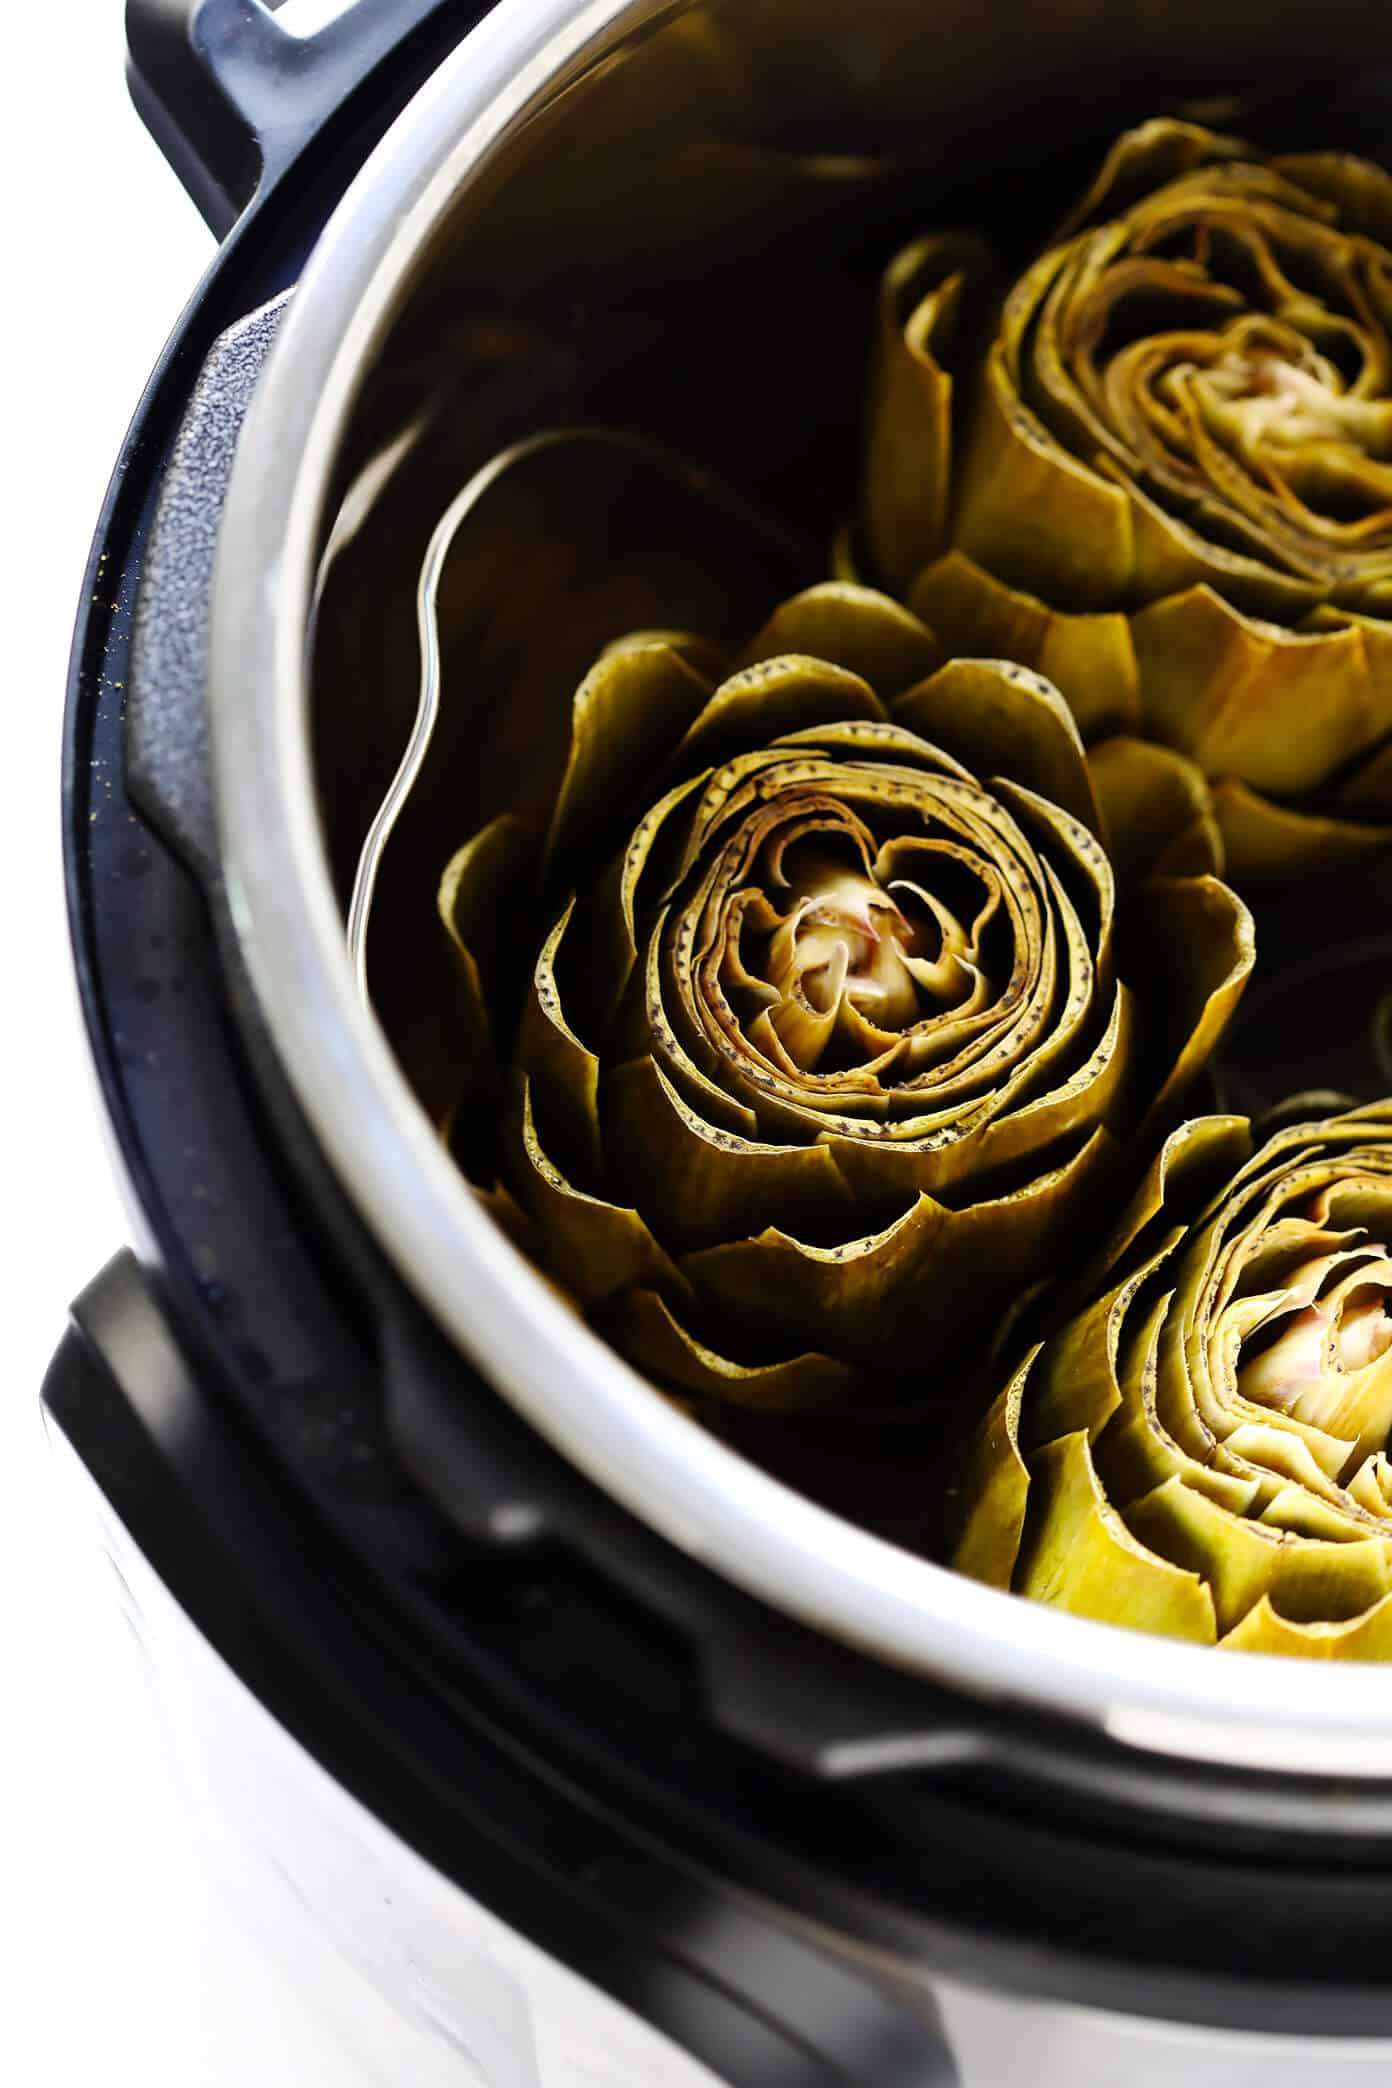 artichoke hearts cooked in instant pot